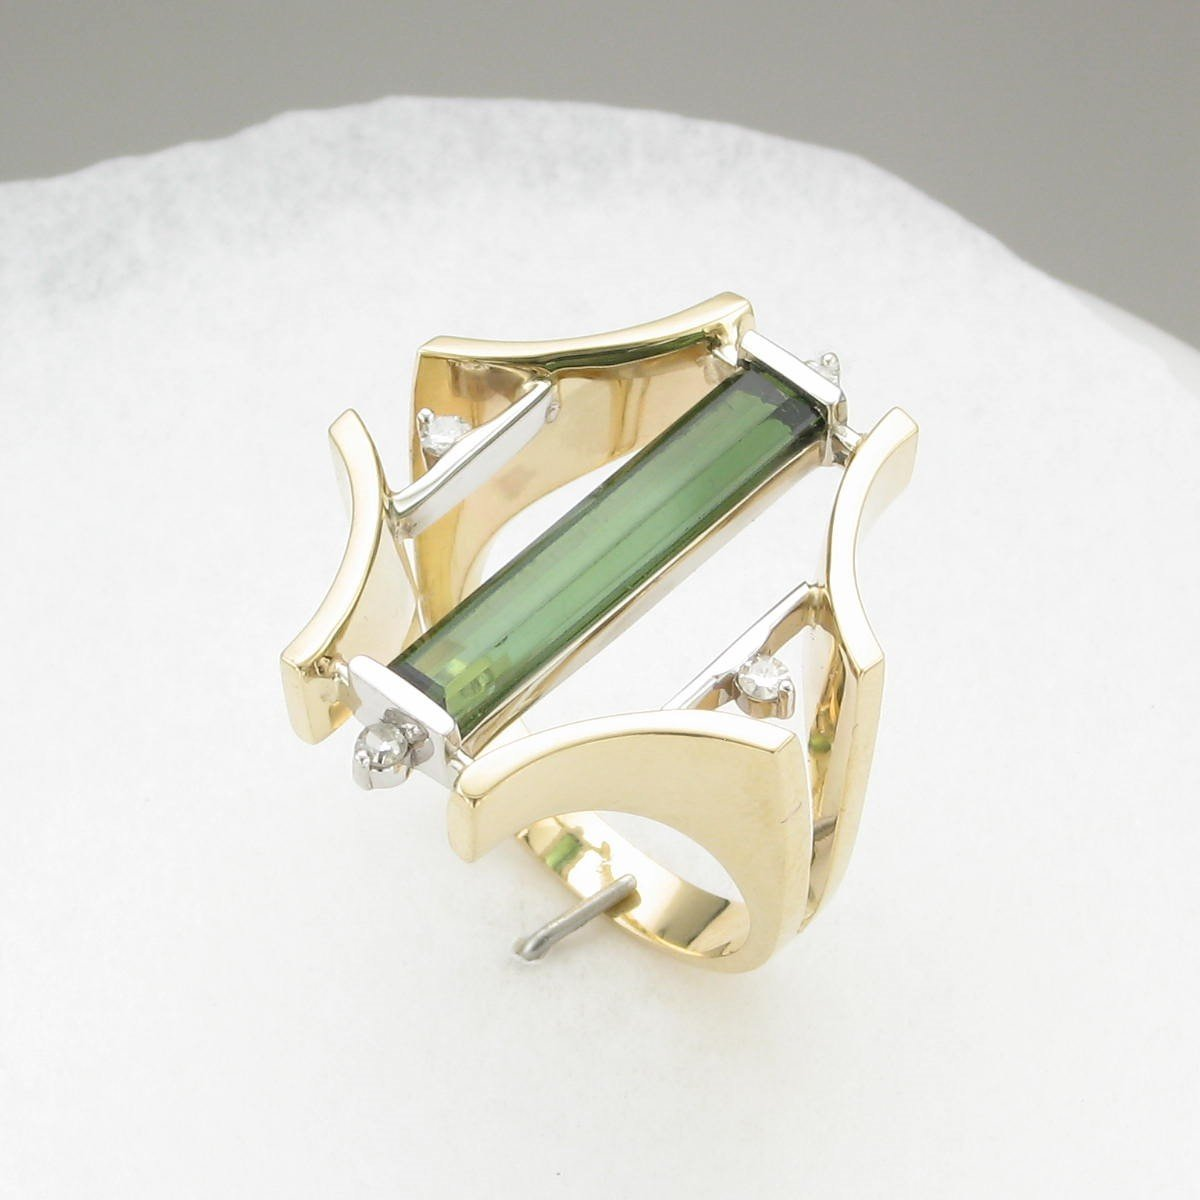 1.99 Total Carat  Green Tourmaline & Diamond Ring set in 18 Karat Yellow and White Gold